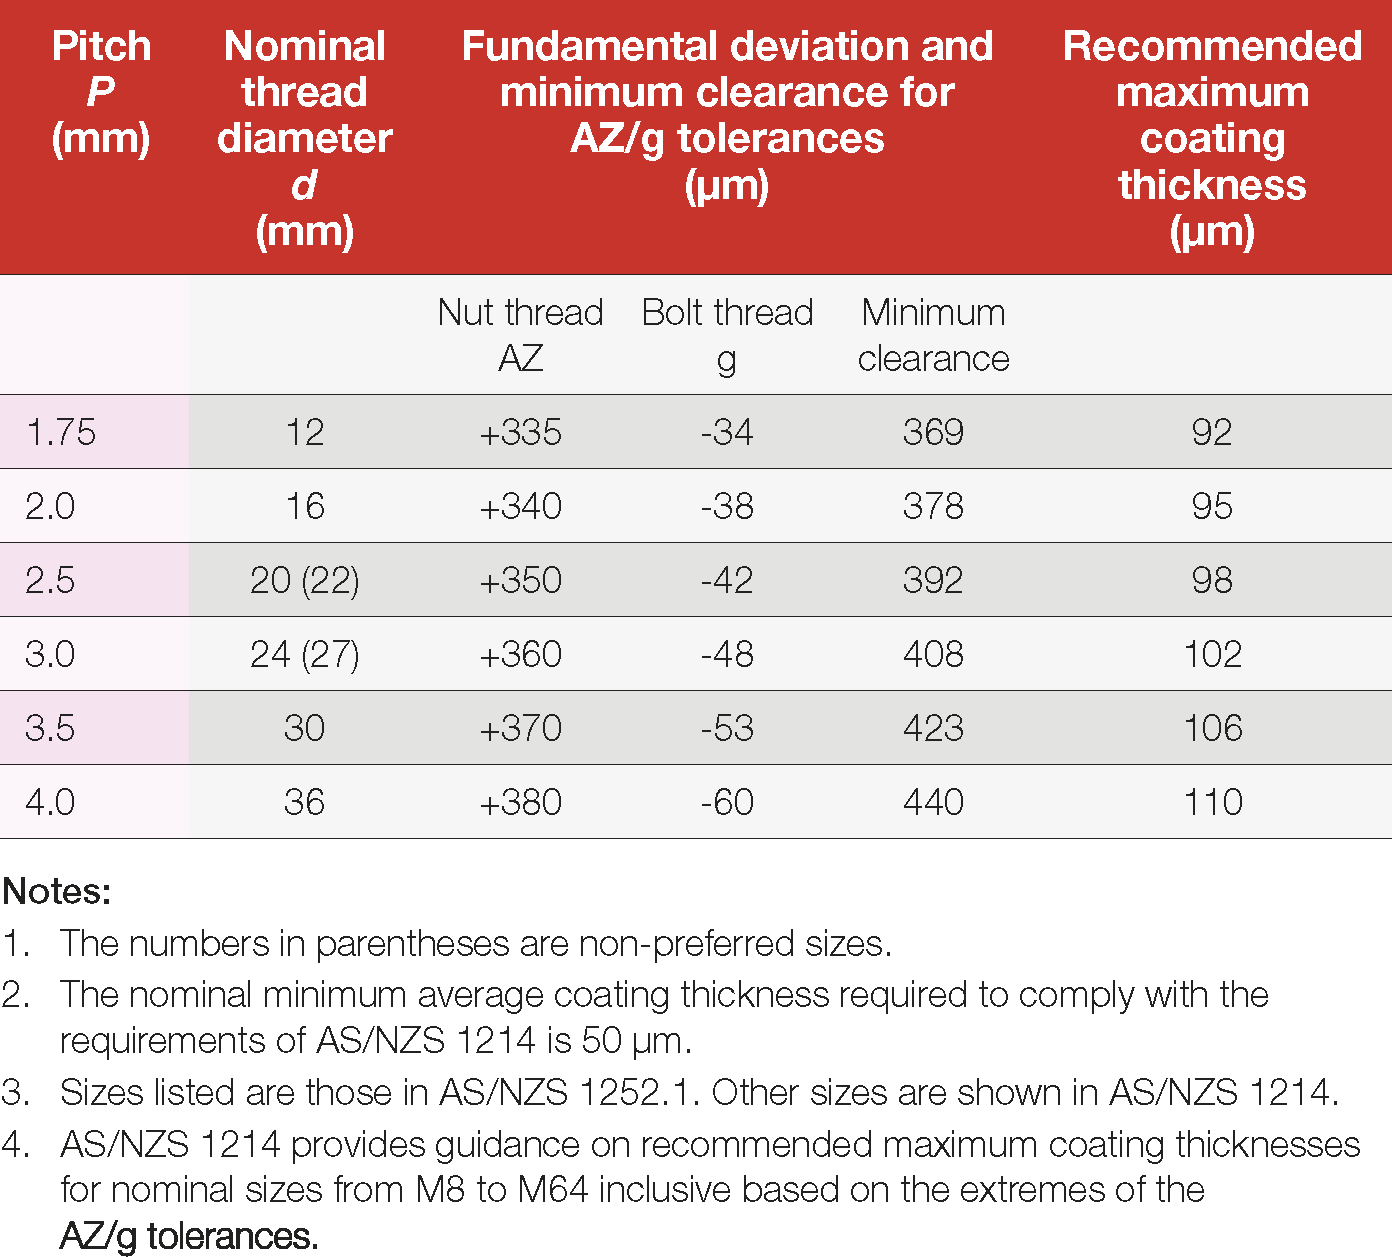 Table 22: Fundamental deviations and upper limits of coating thicknesses for assemblies with nuts tapped oversize